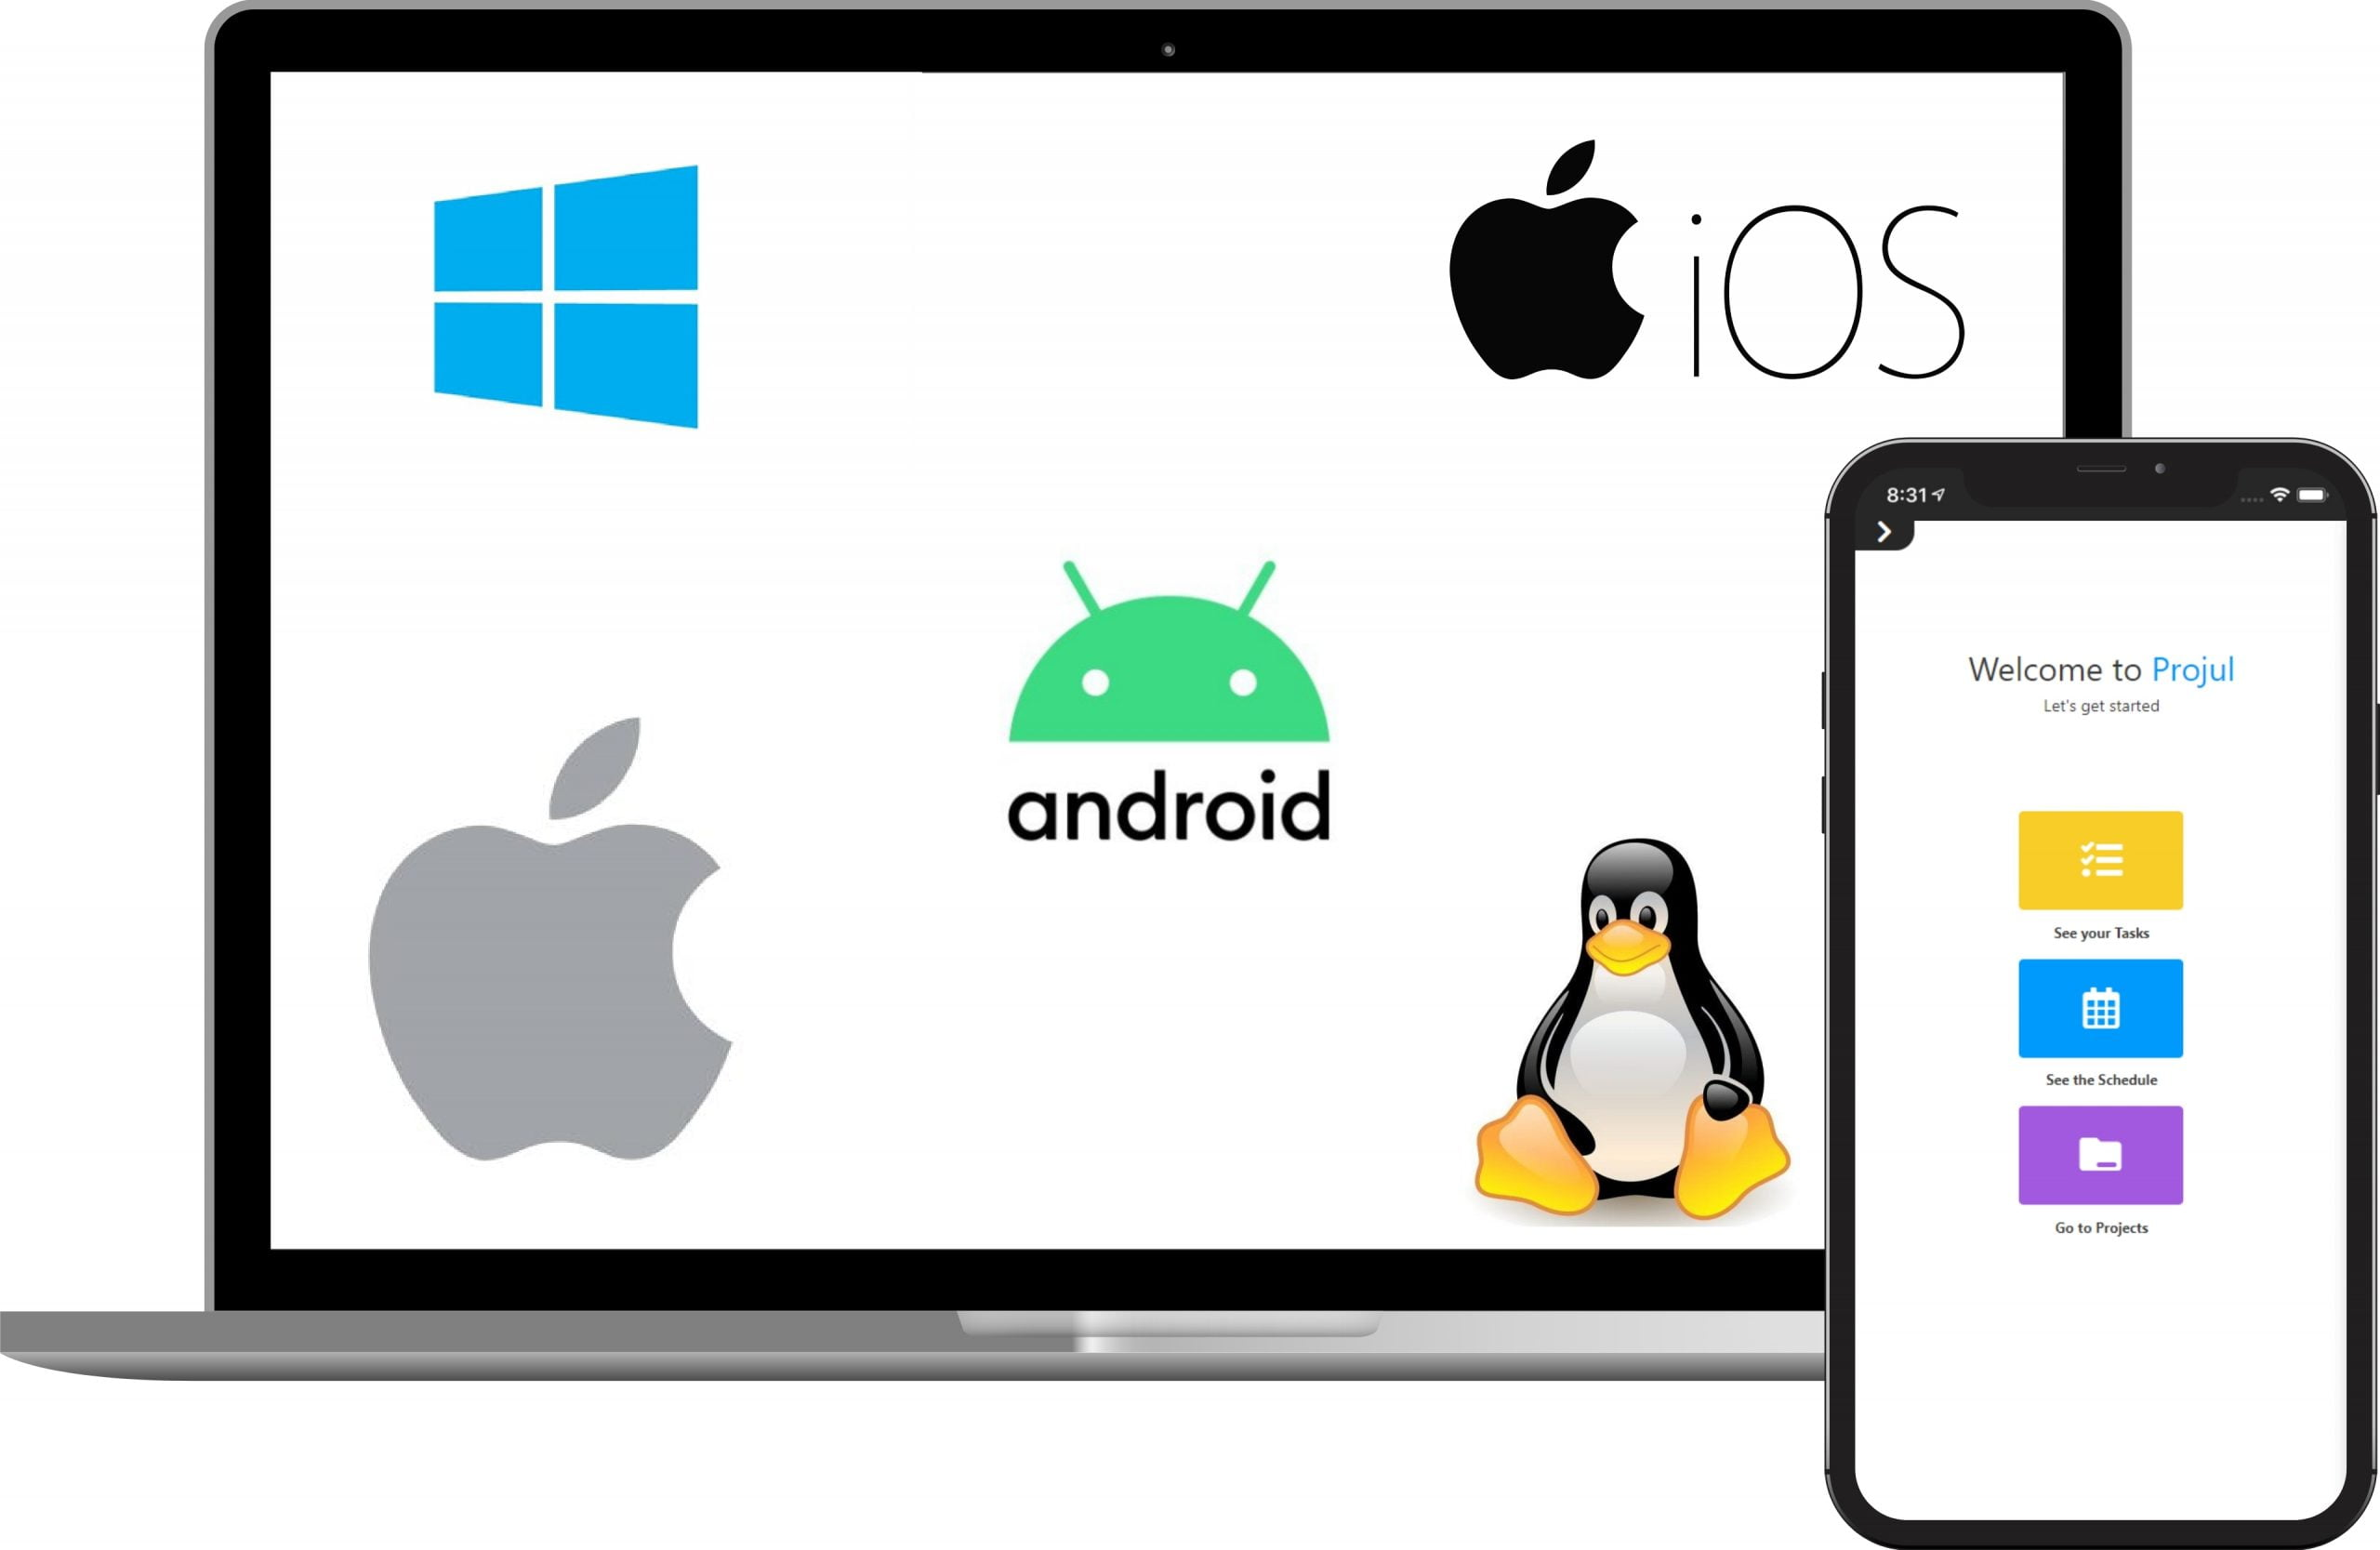 iOS and Android Apps Multi Platform with Projul